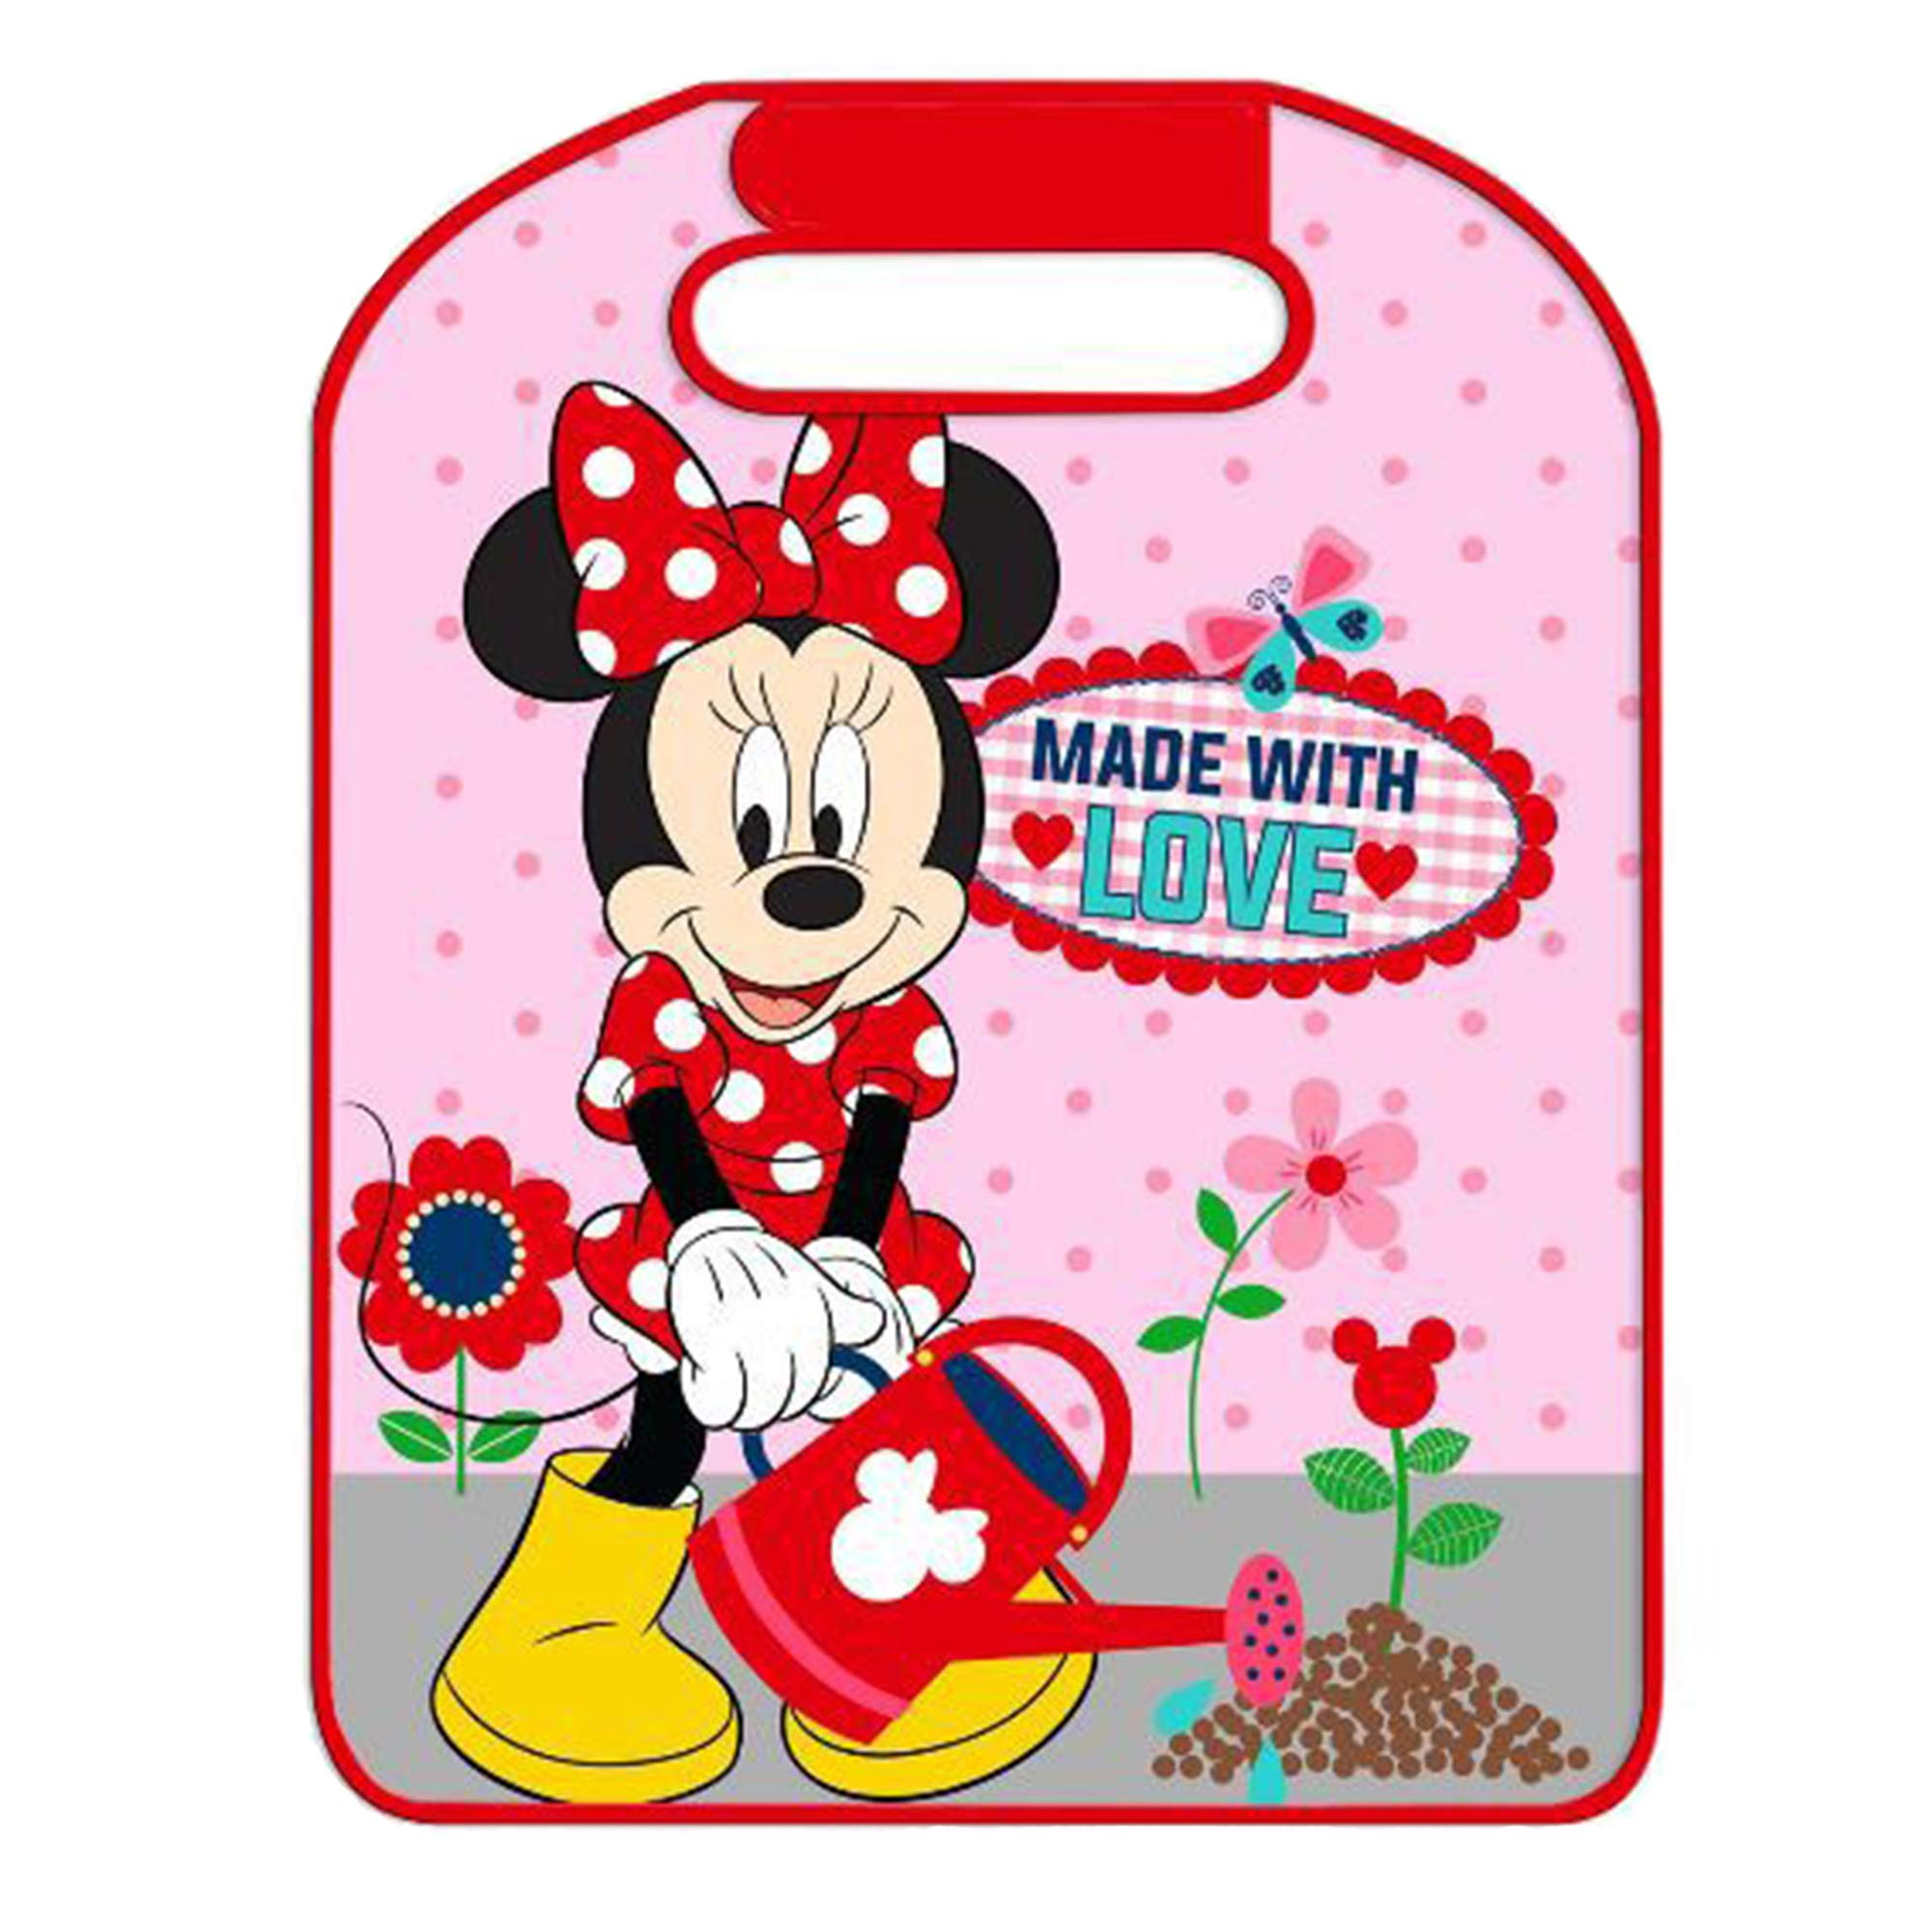 Disney Minnie Mouse Baby Back Seat Car Protector by Eurasia